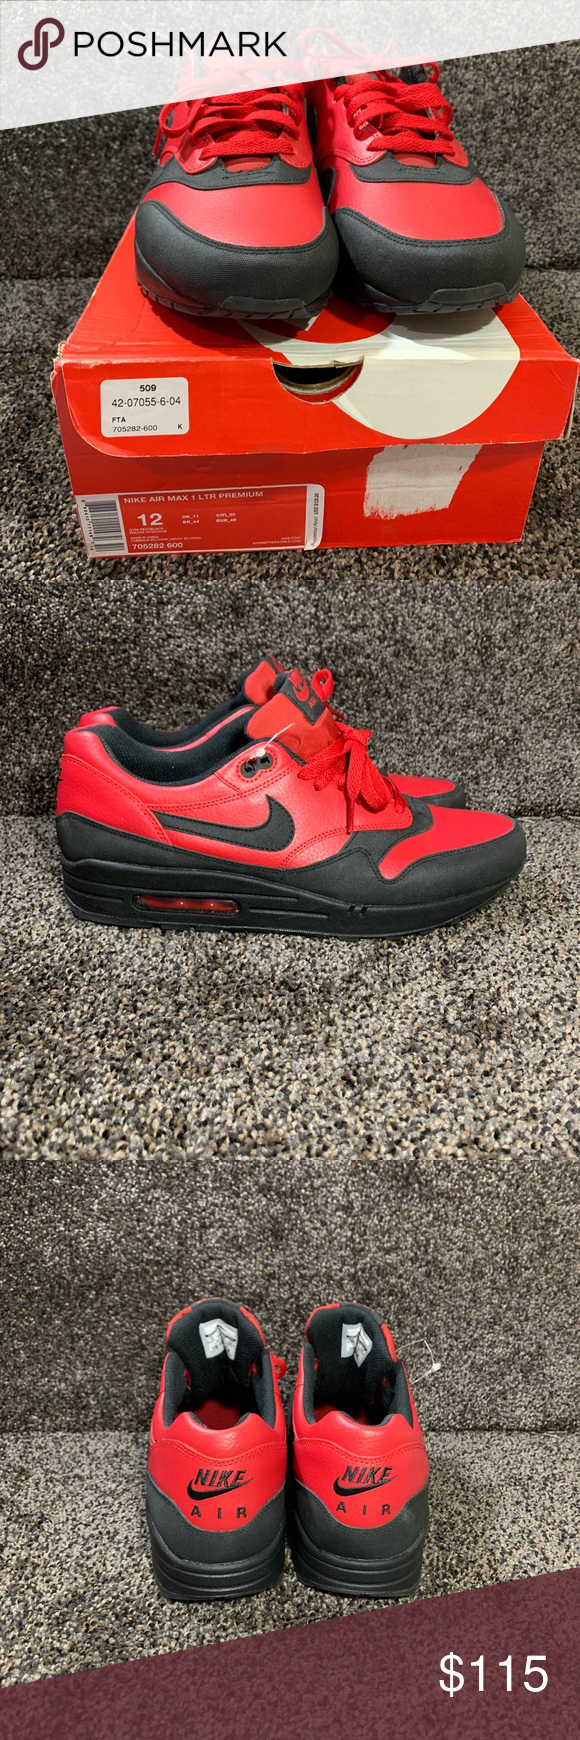 buy popular 5fdea f8b9f Red Black · Gym · Size 12 · Athletic Shoes · Nike Shoes · NIKE AIR MAX 1  LTR PREMIUM SIZE 12 The Air Max 1 gets the advantage of